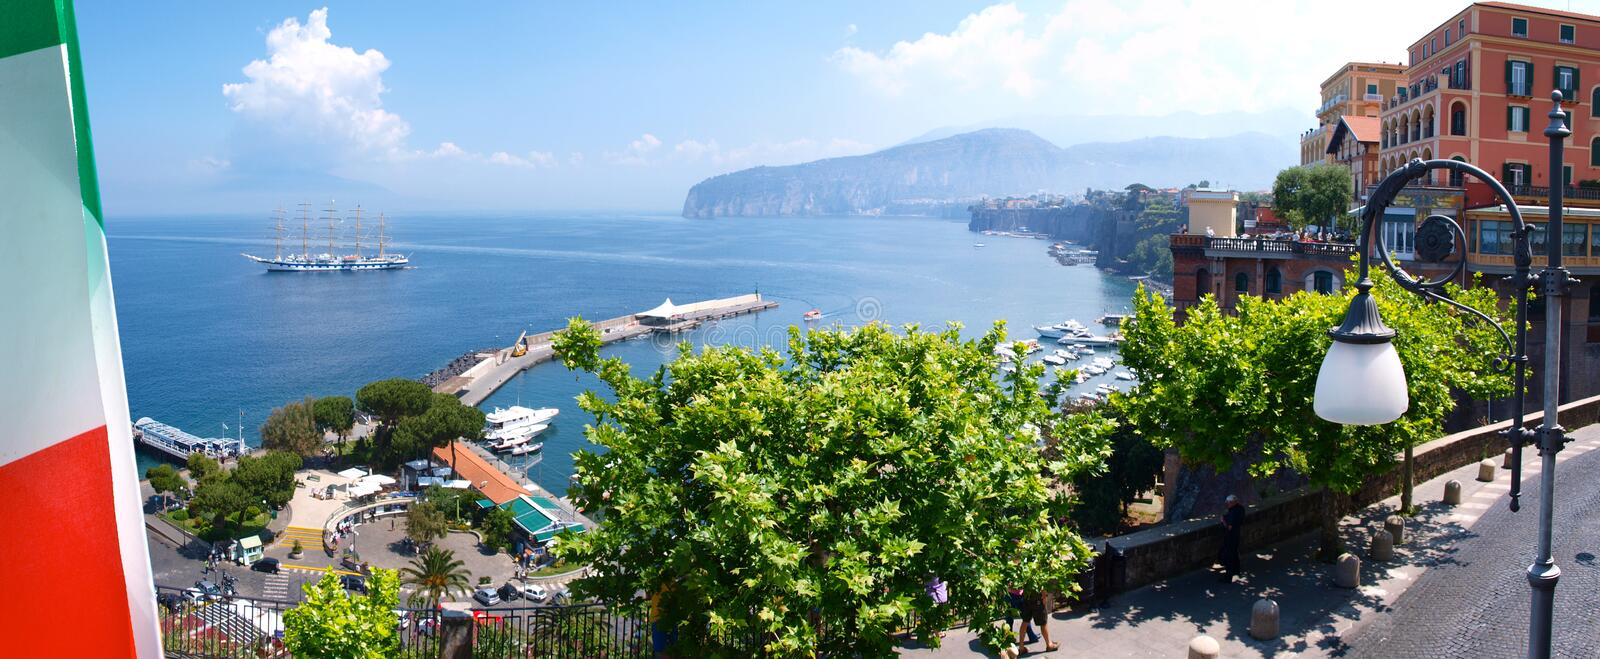 Download Sorrento Italy stock image. Image of green, white, panorama - 14475955